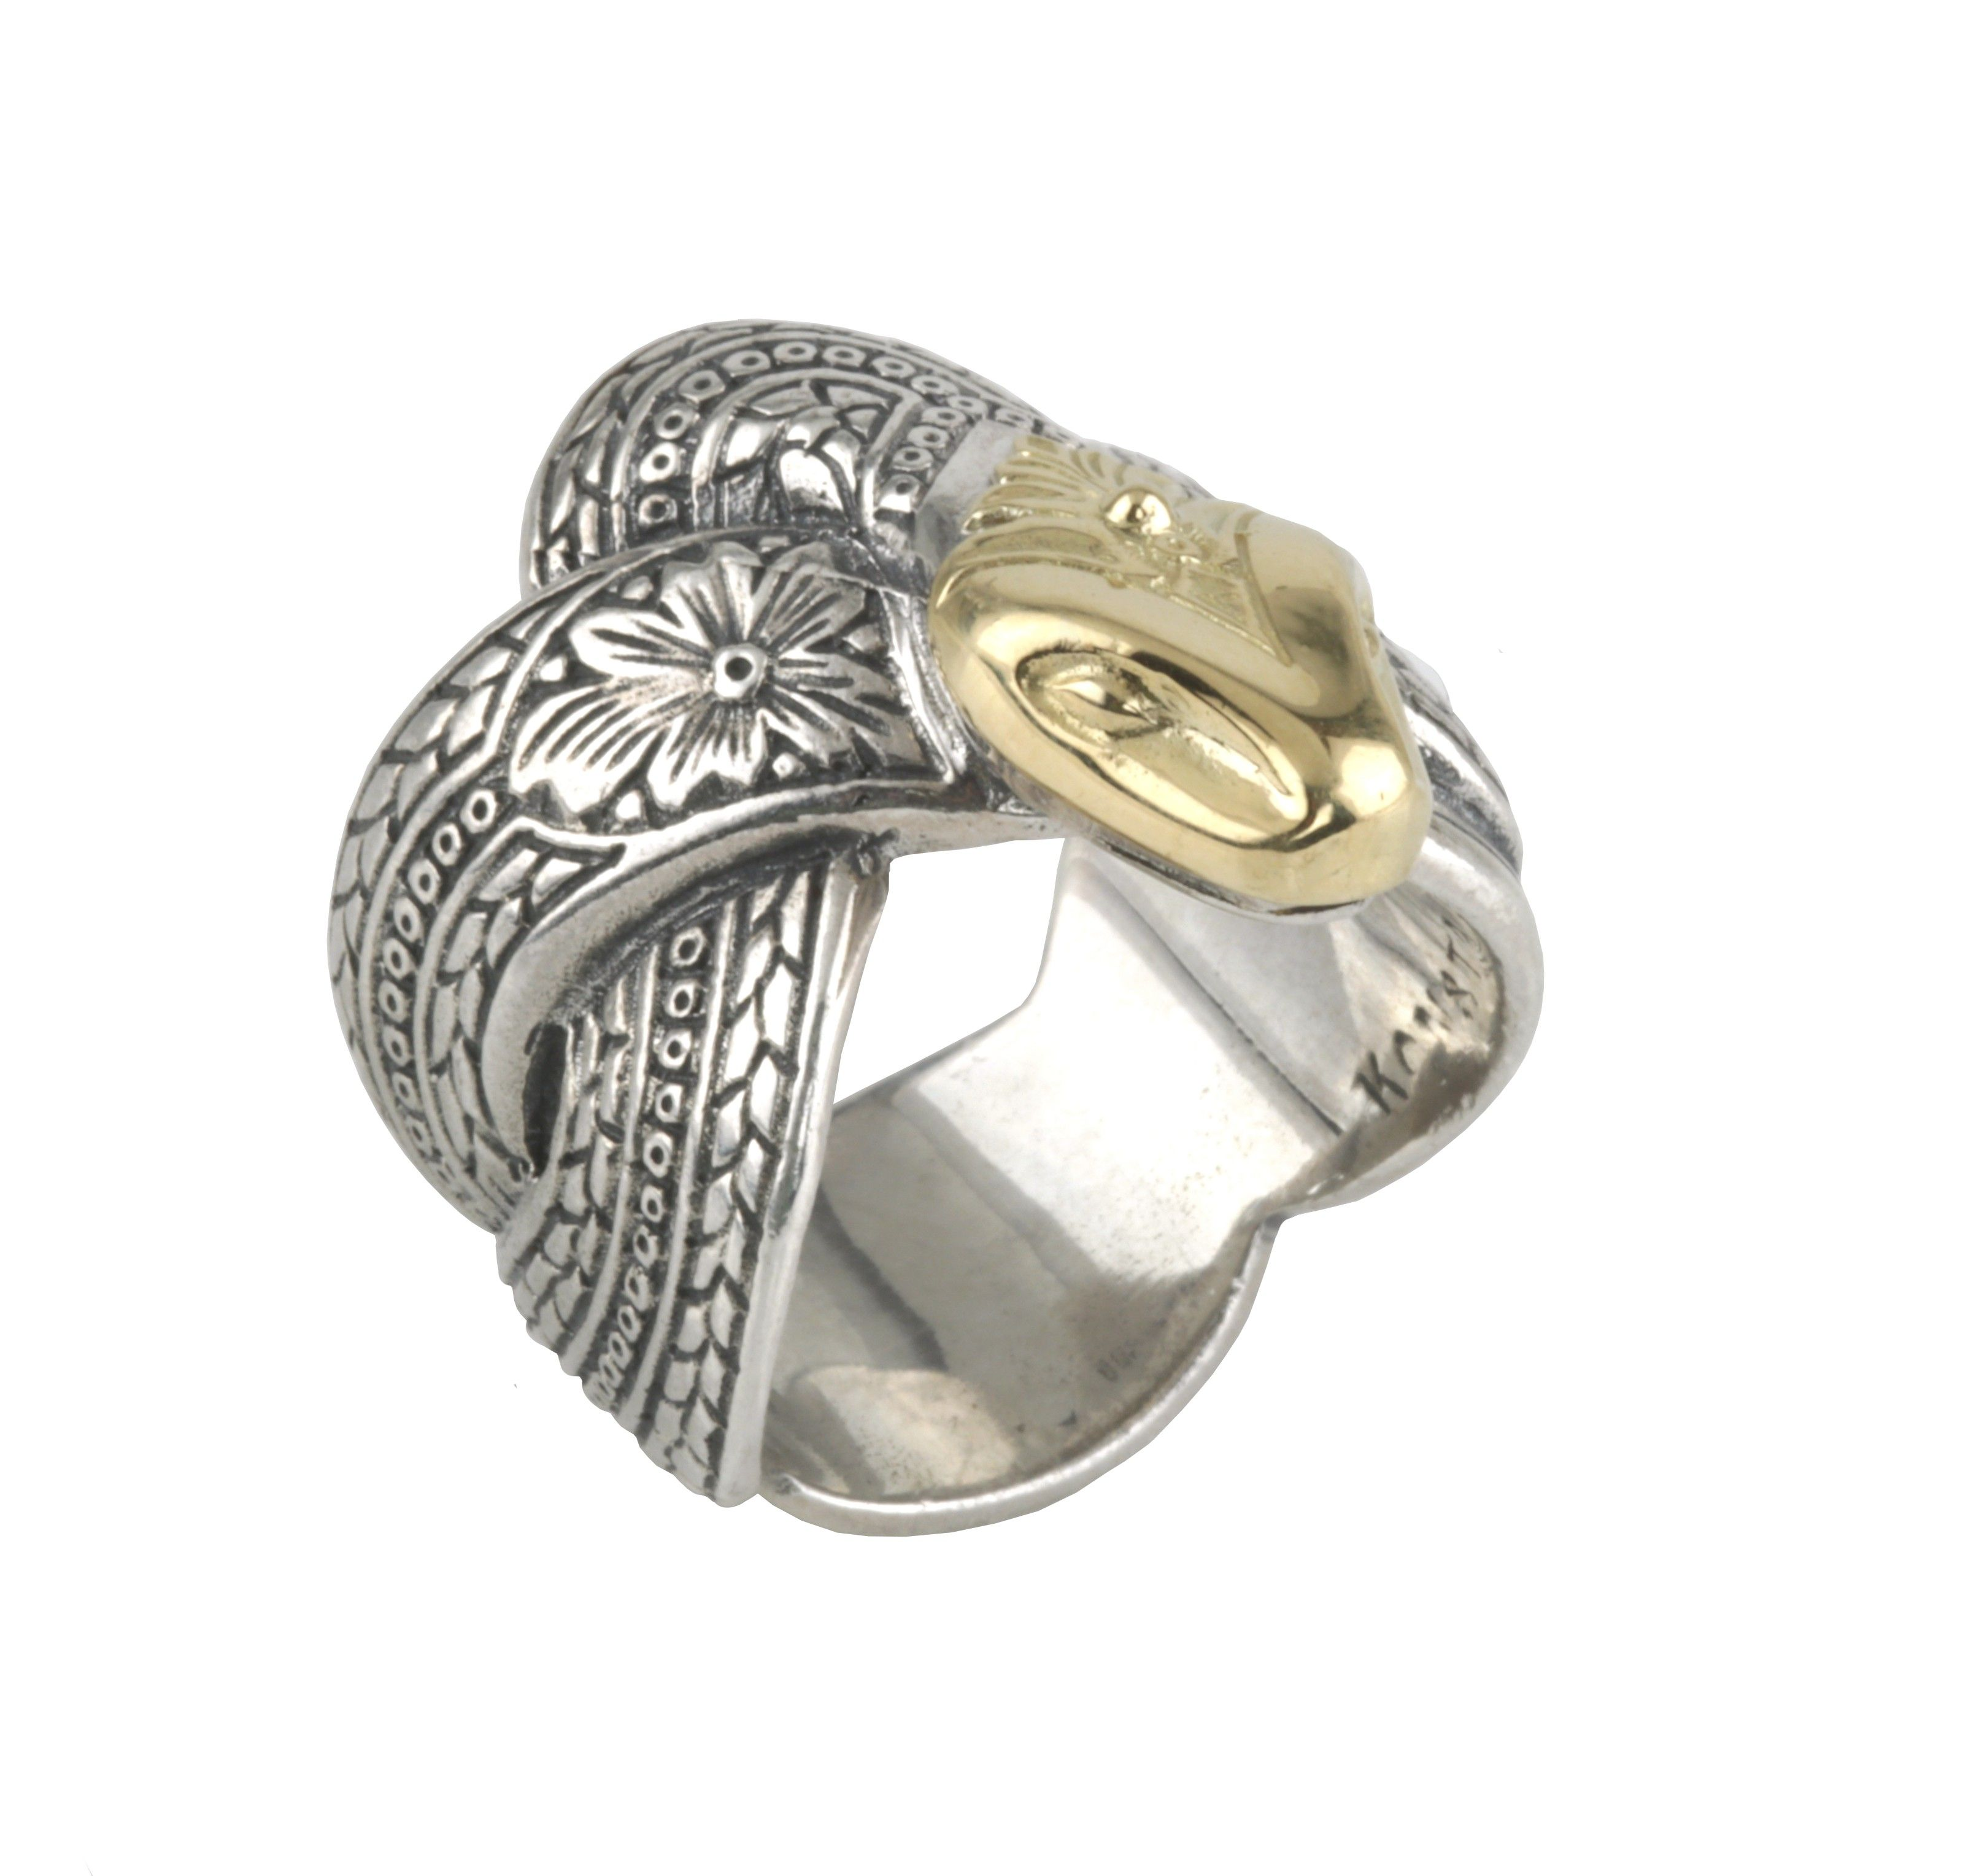 university rings greek neoclassical unicorn renaissance engagement aju to ancient ring